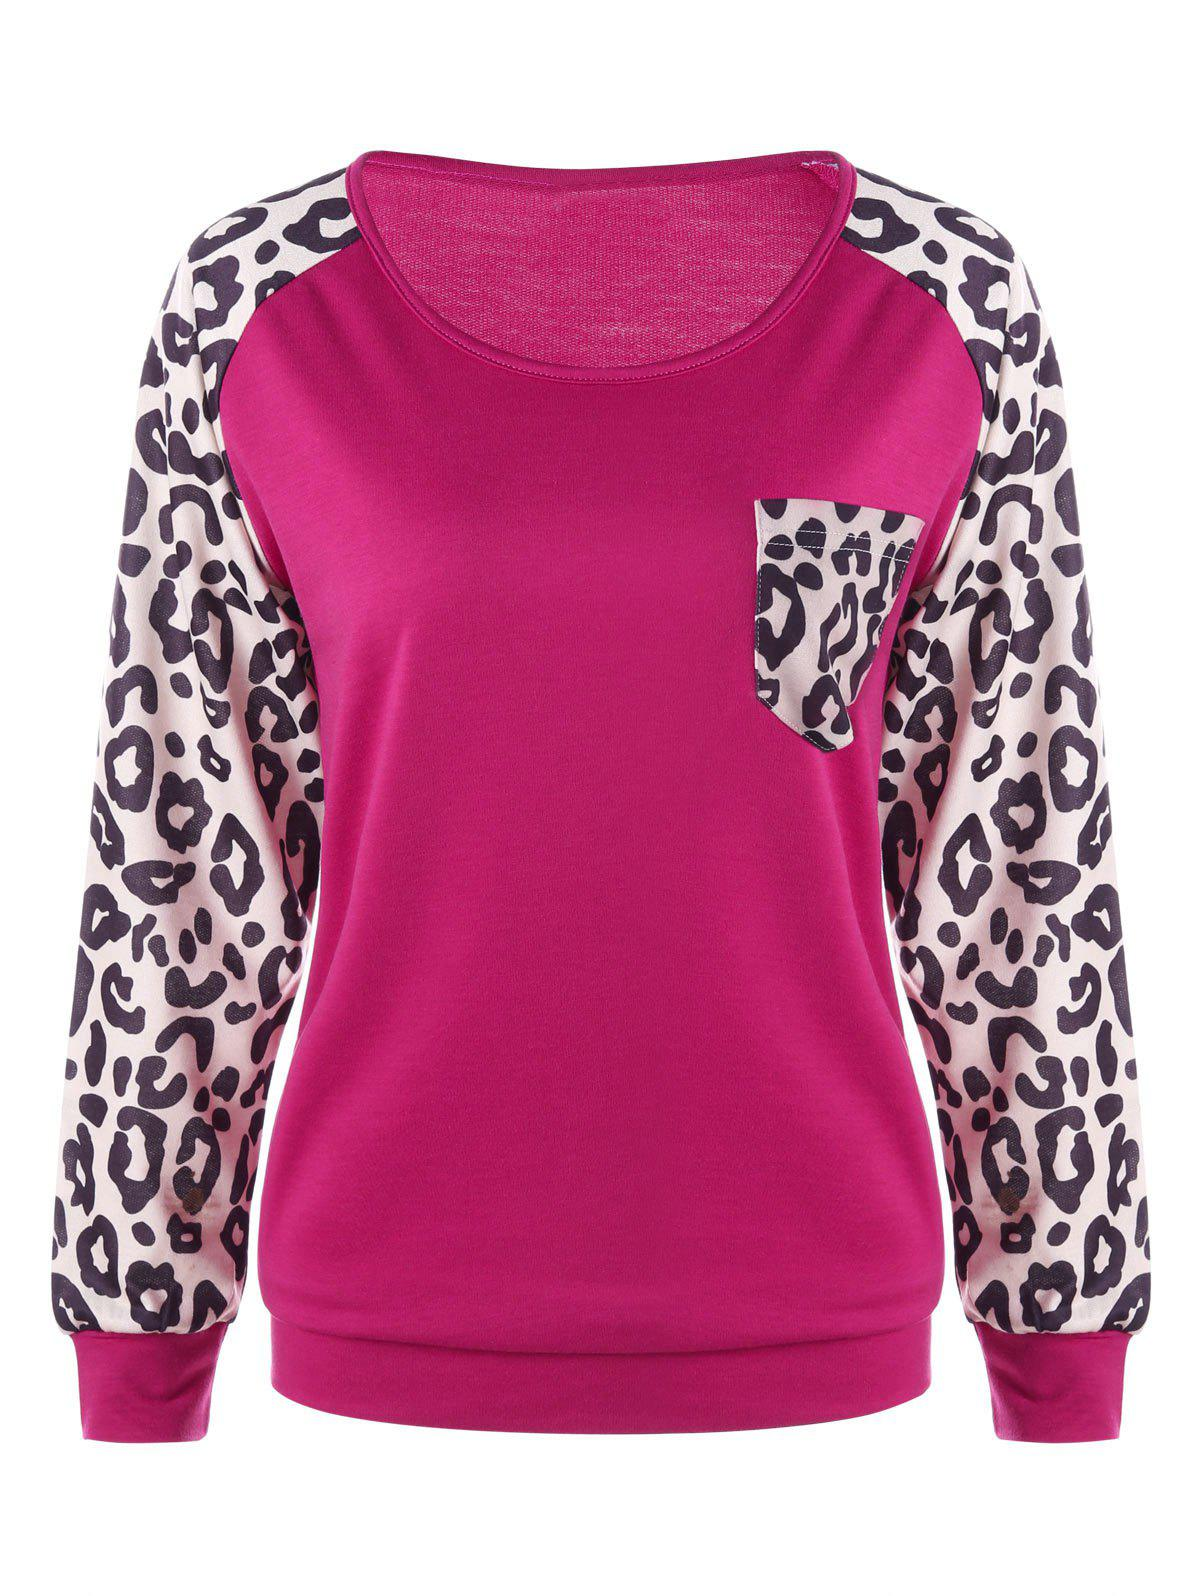 Patch Pocket Leopard Sweatshirt - PLUM L